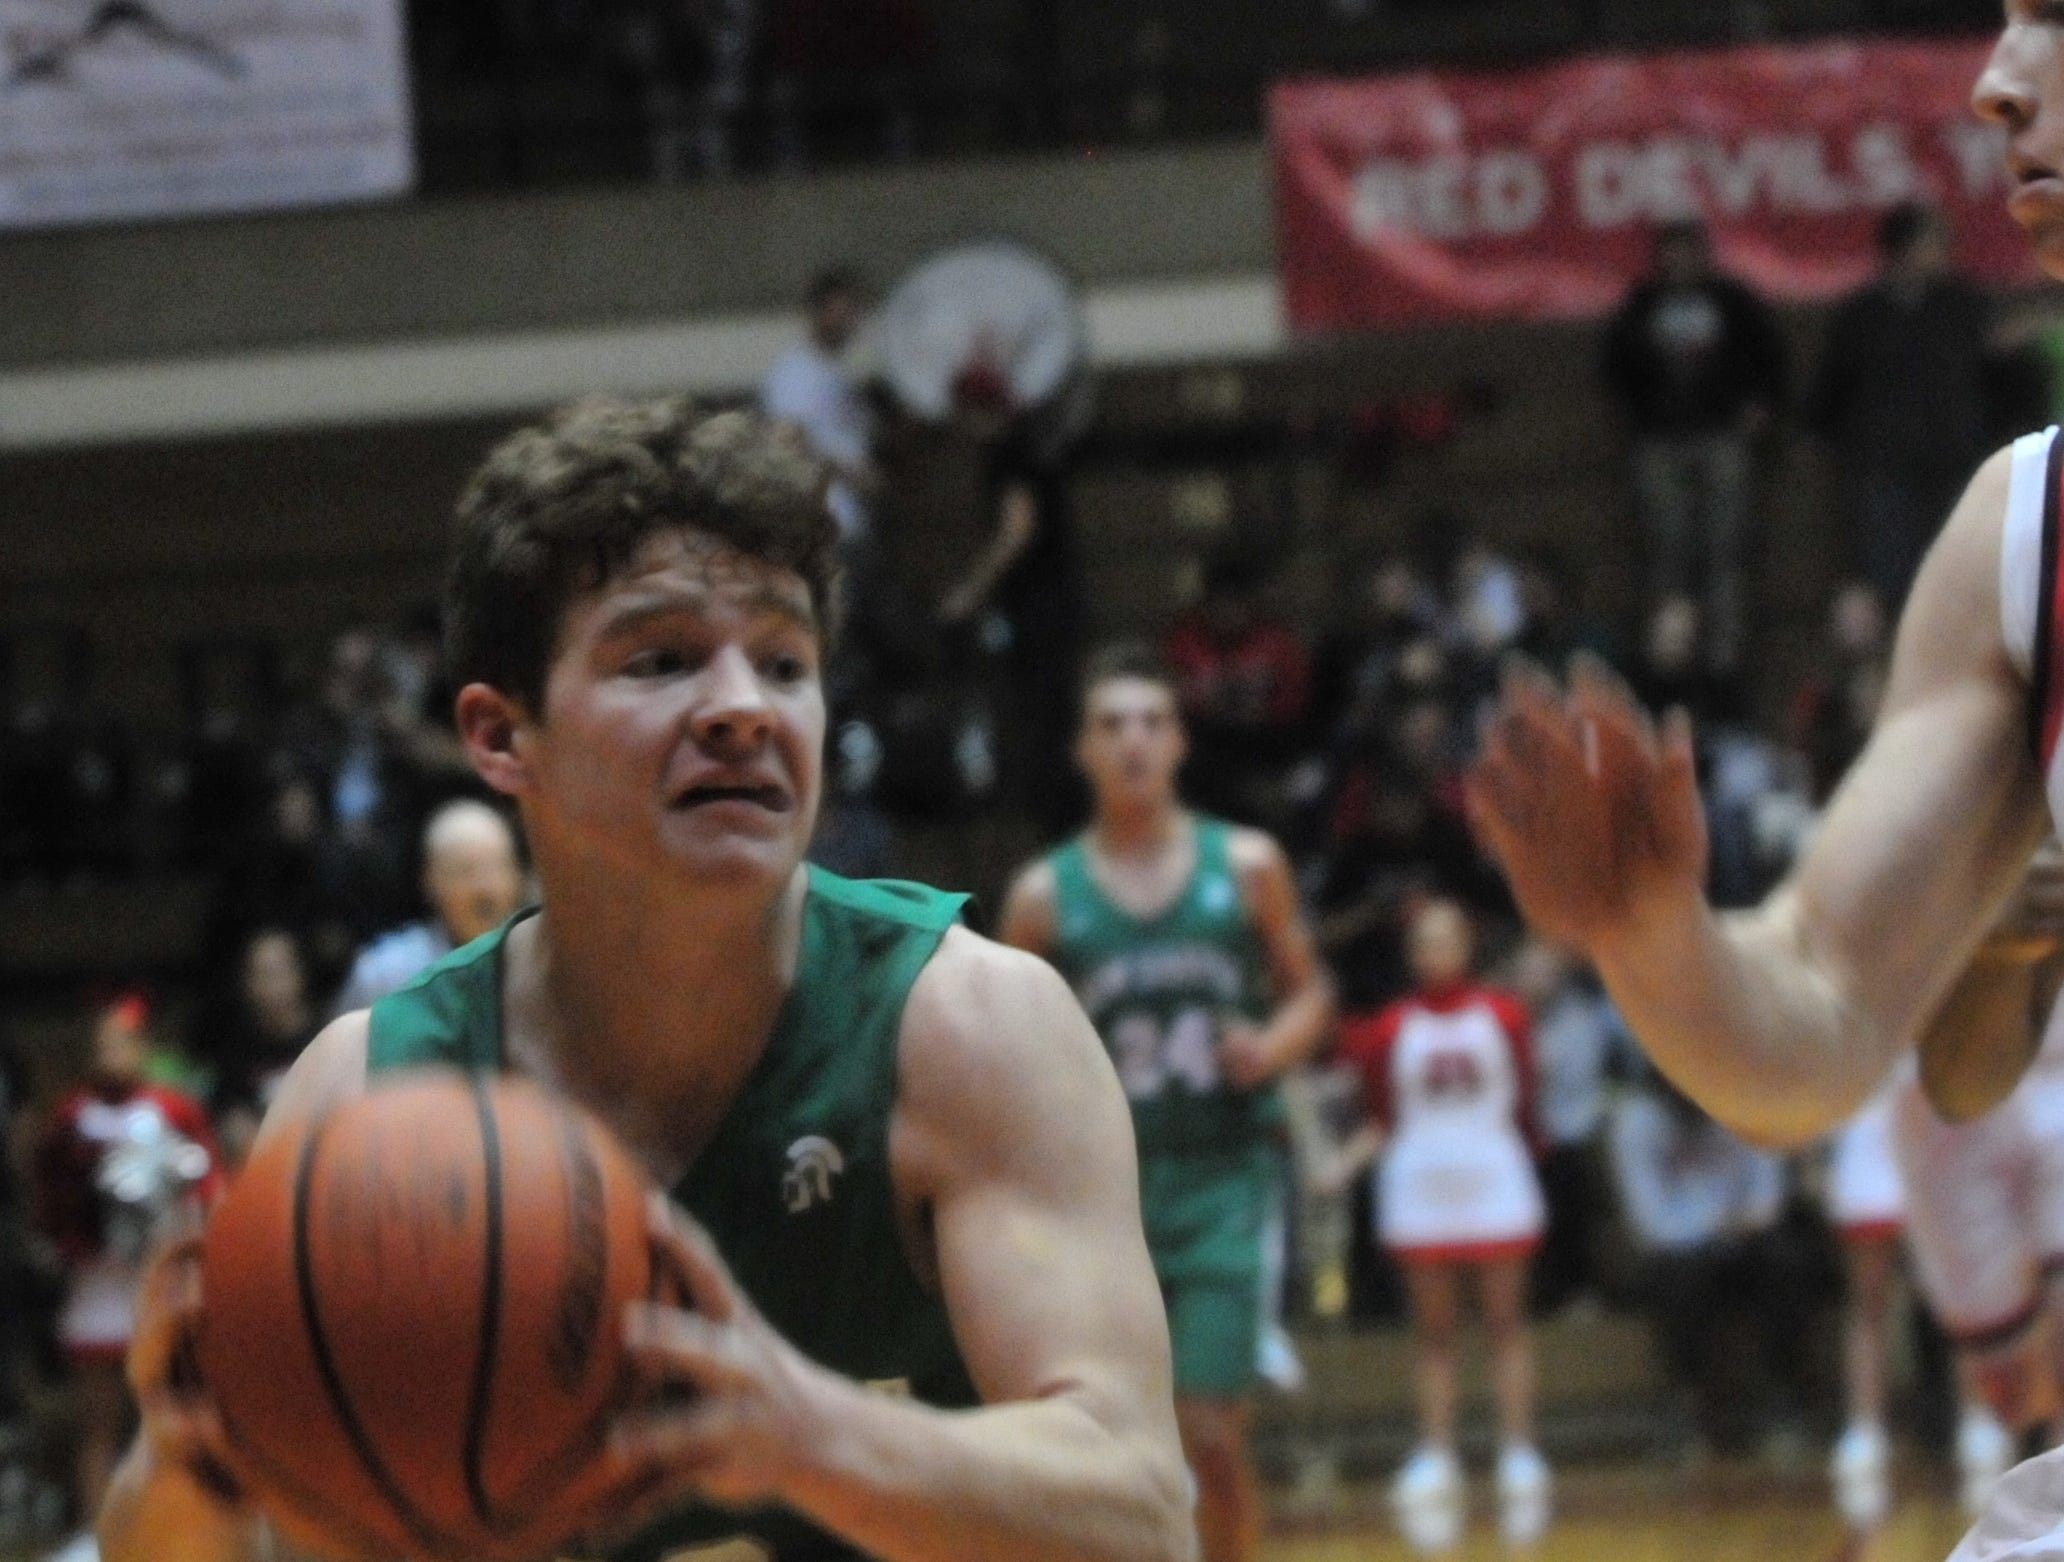 New Castle's Mason Hardwick (10) makes a move to the basket during a boys basketball game against Richmond at Tiernan Center Friday, Jan. 4, 2019.